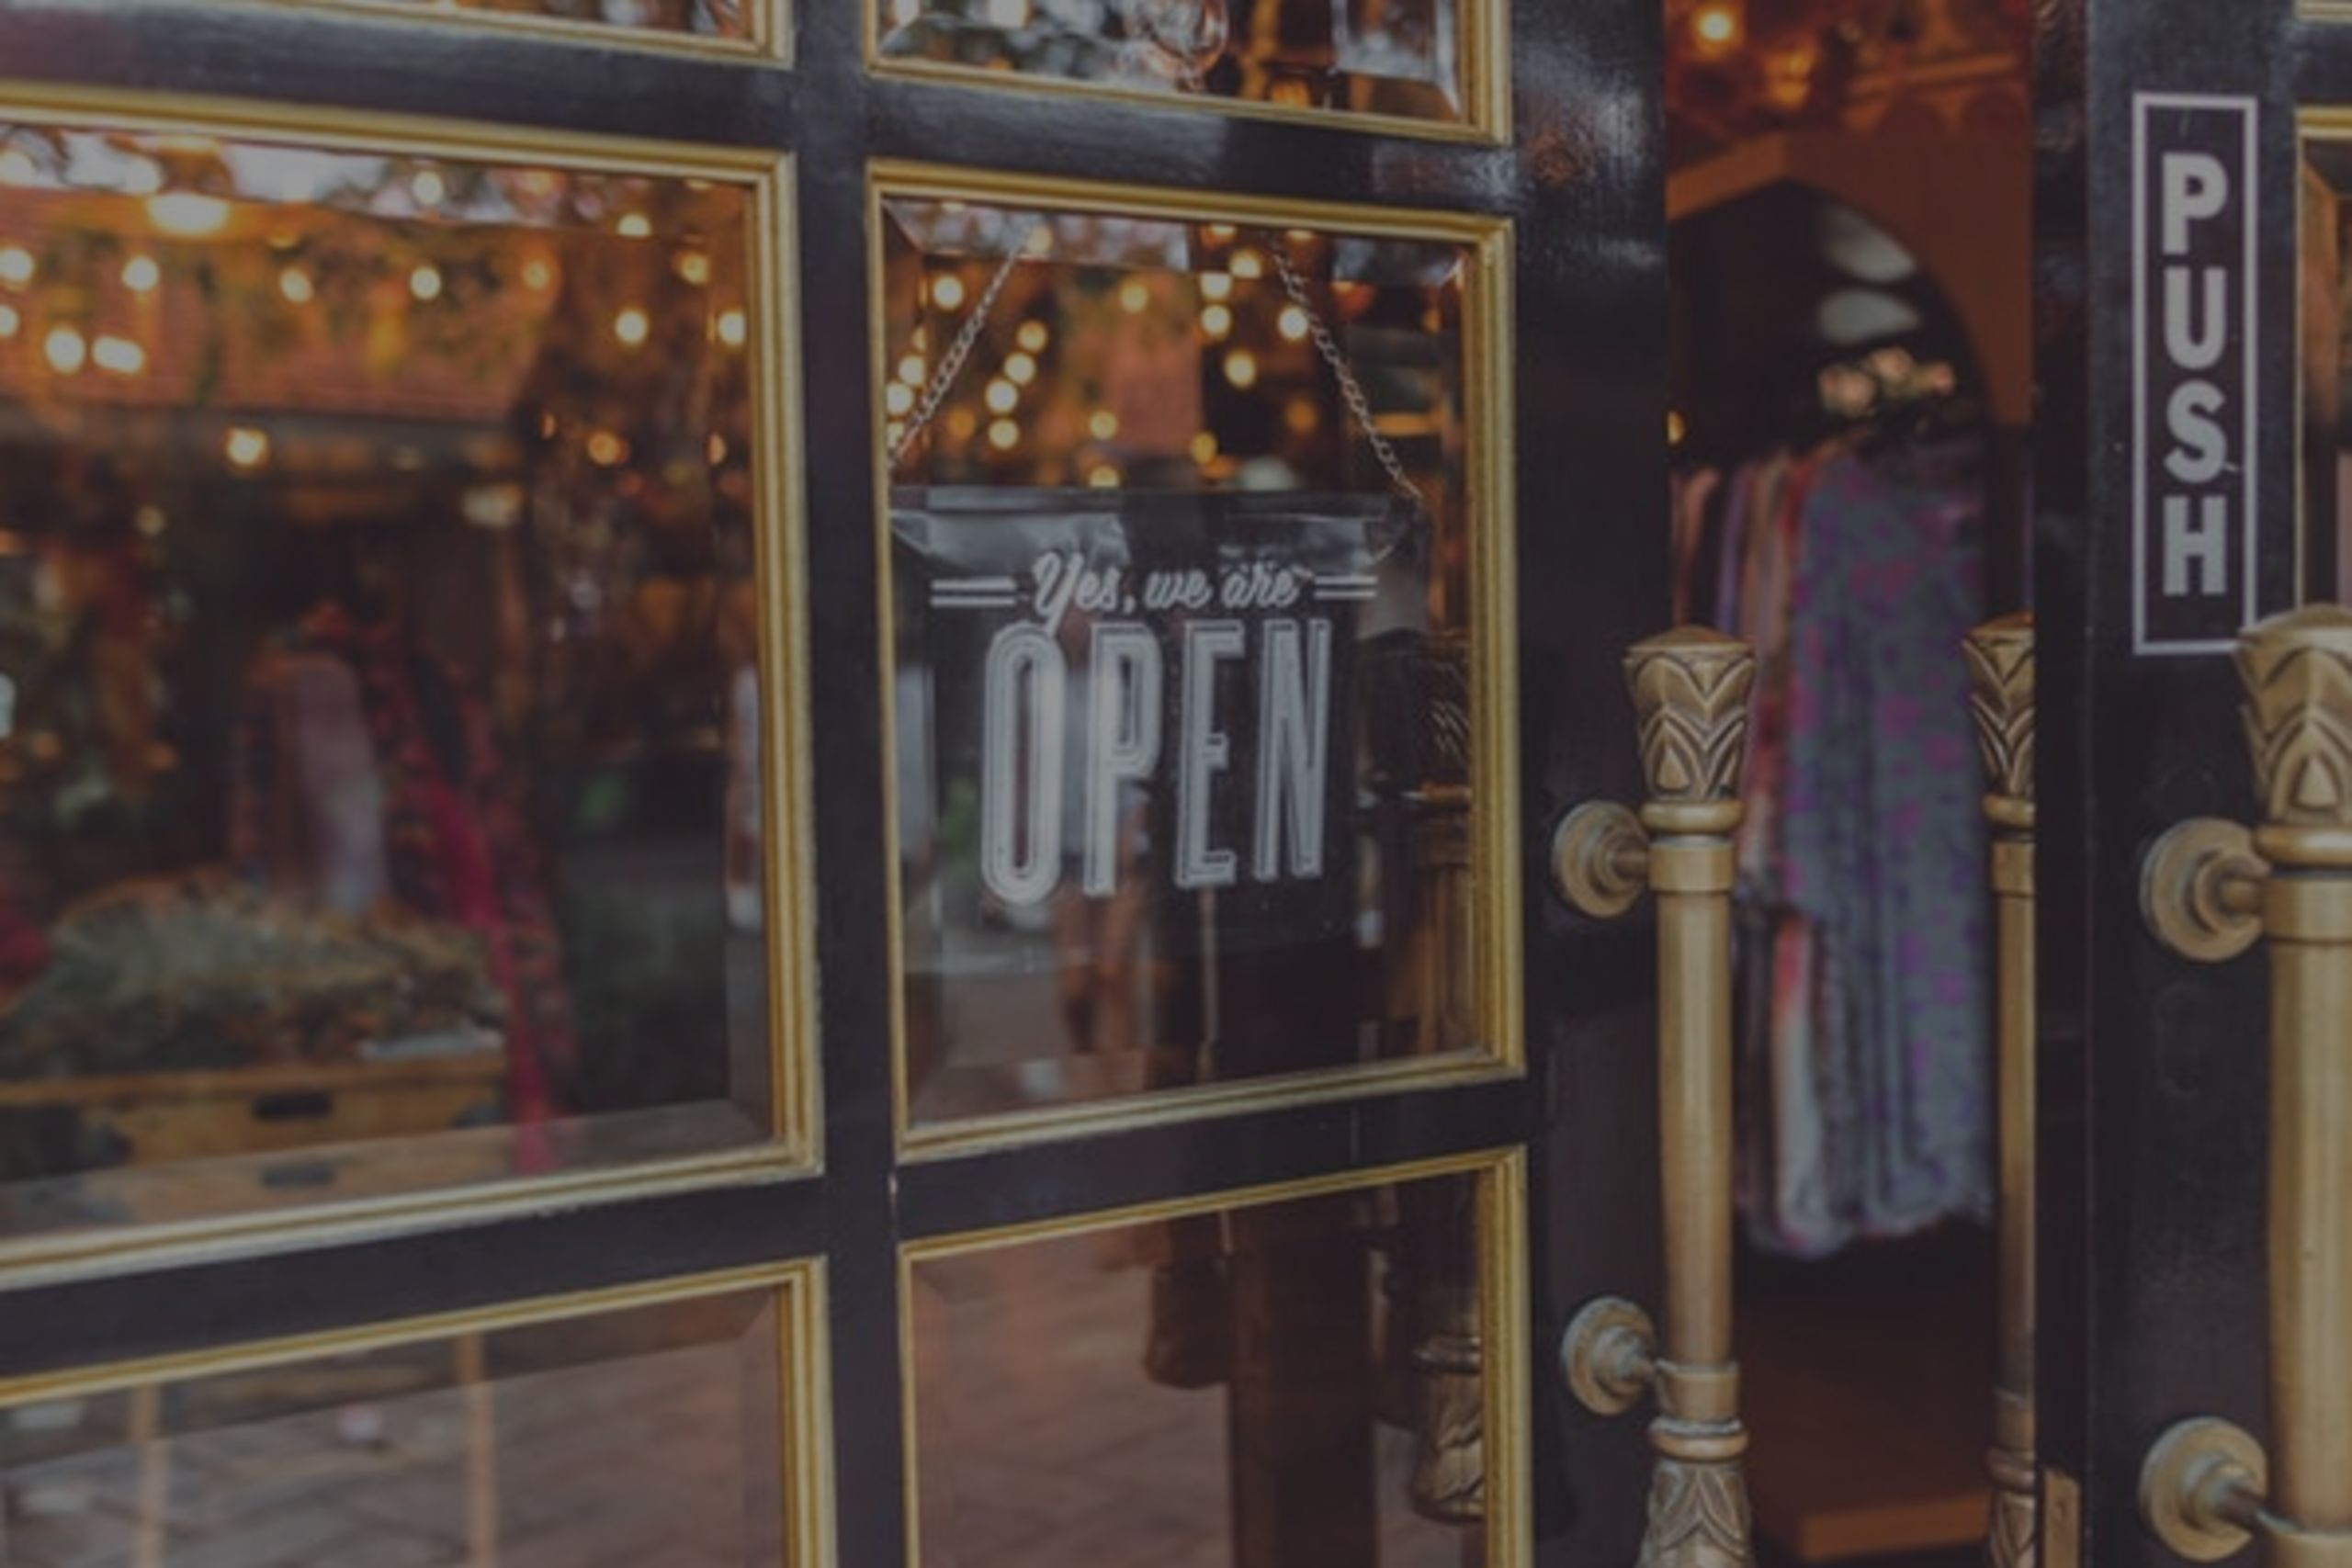 Our Top Picks: Places We'll be Visting on Small Business Saturday